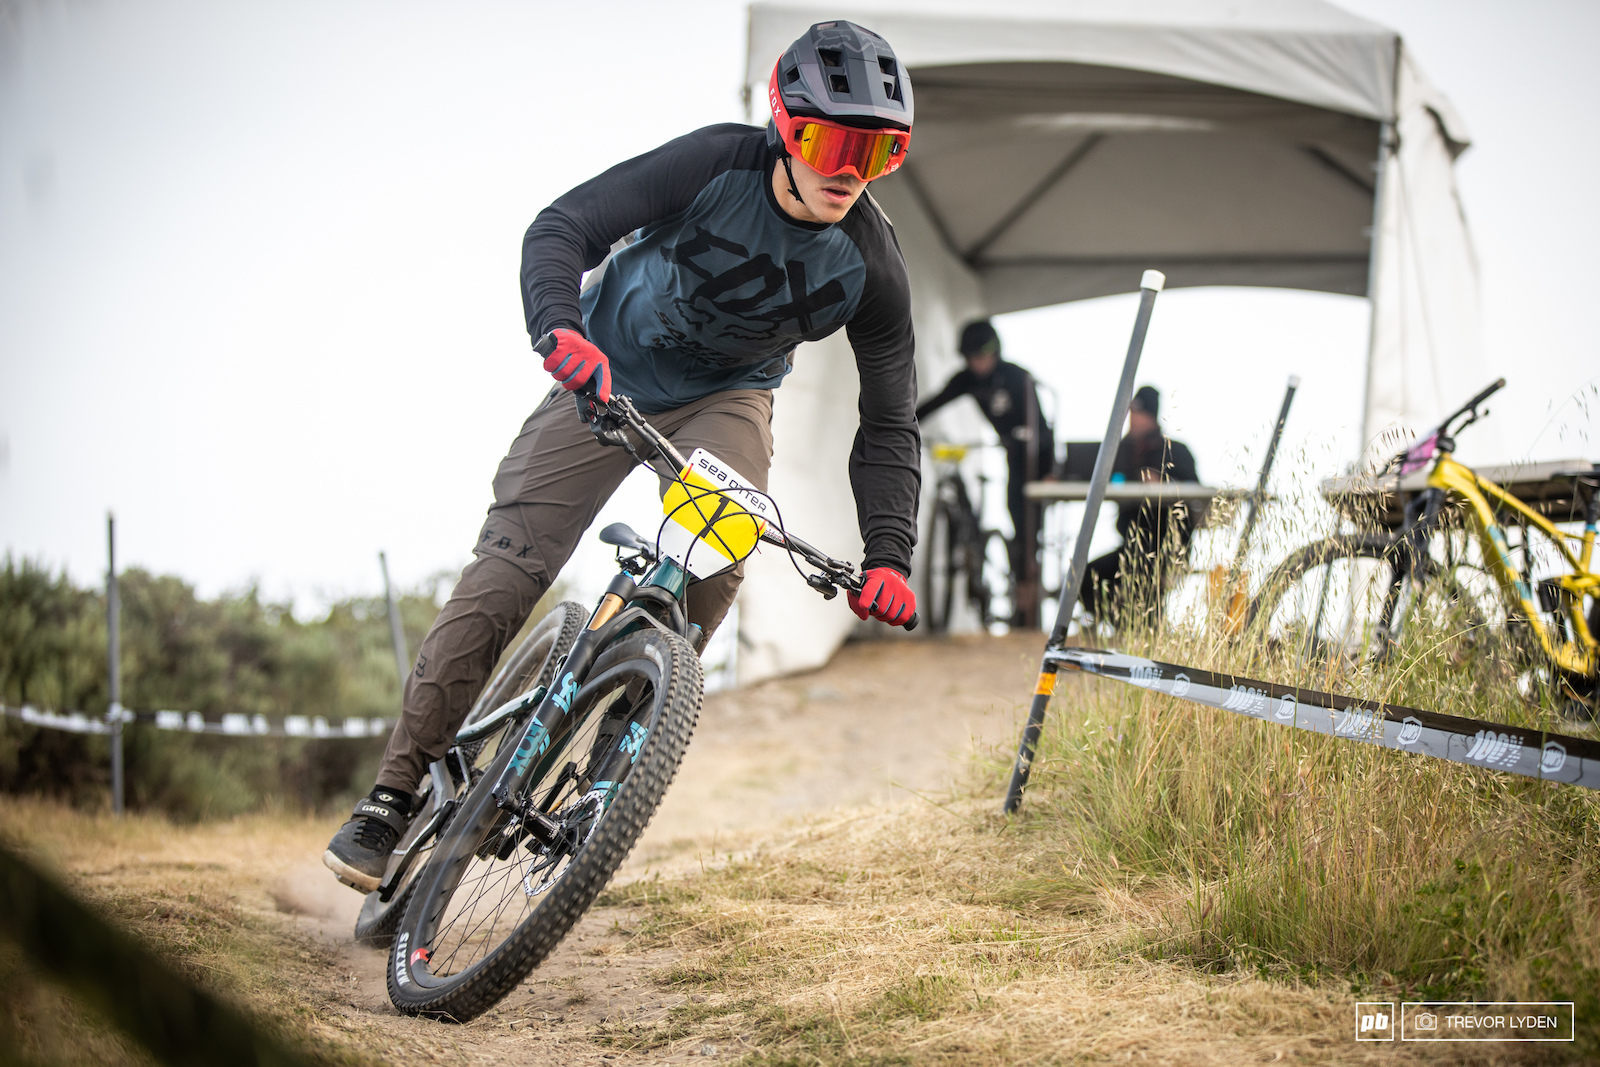 The first rider on the course